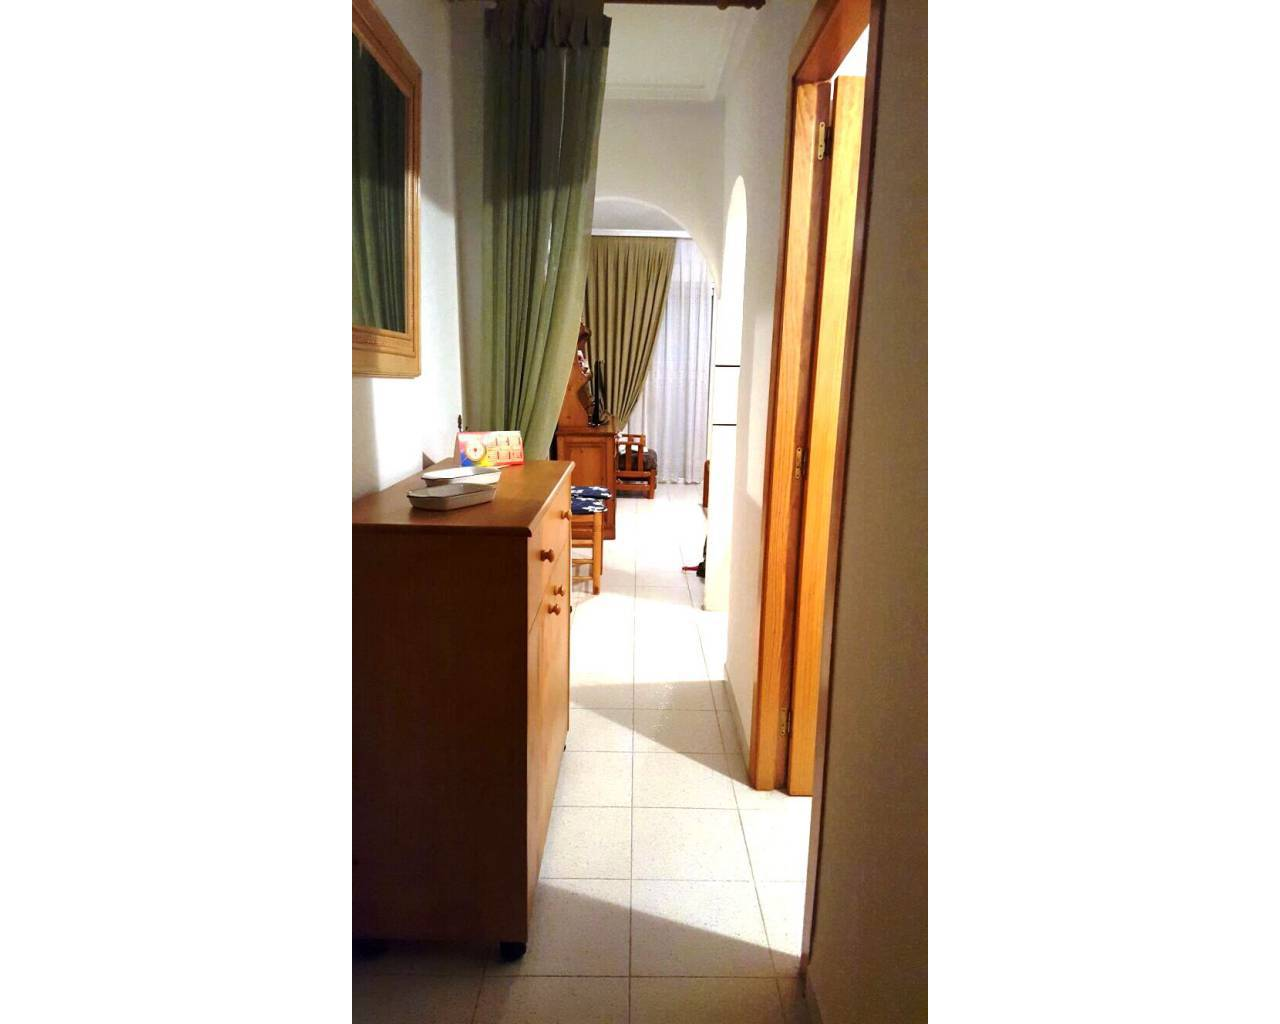 Revente - Apartment - Torrevieja - Acequion